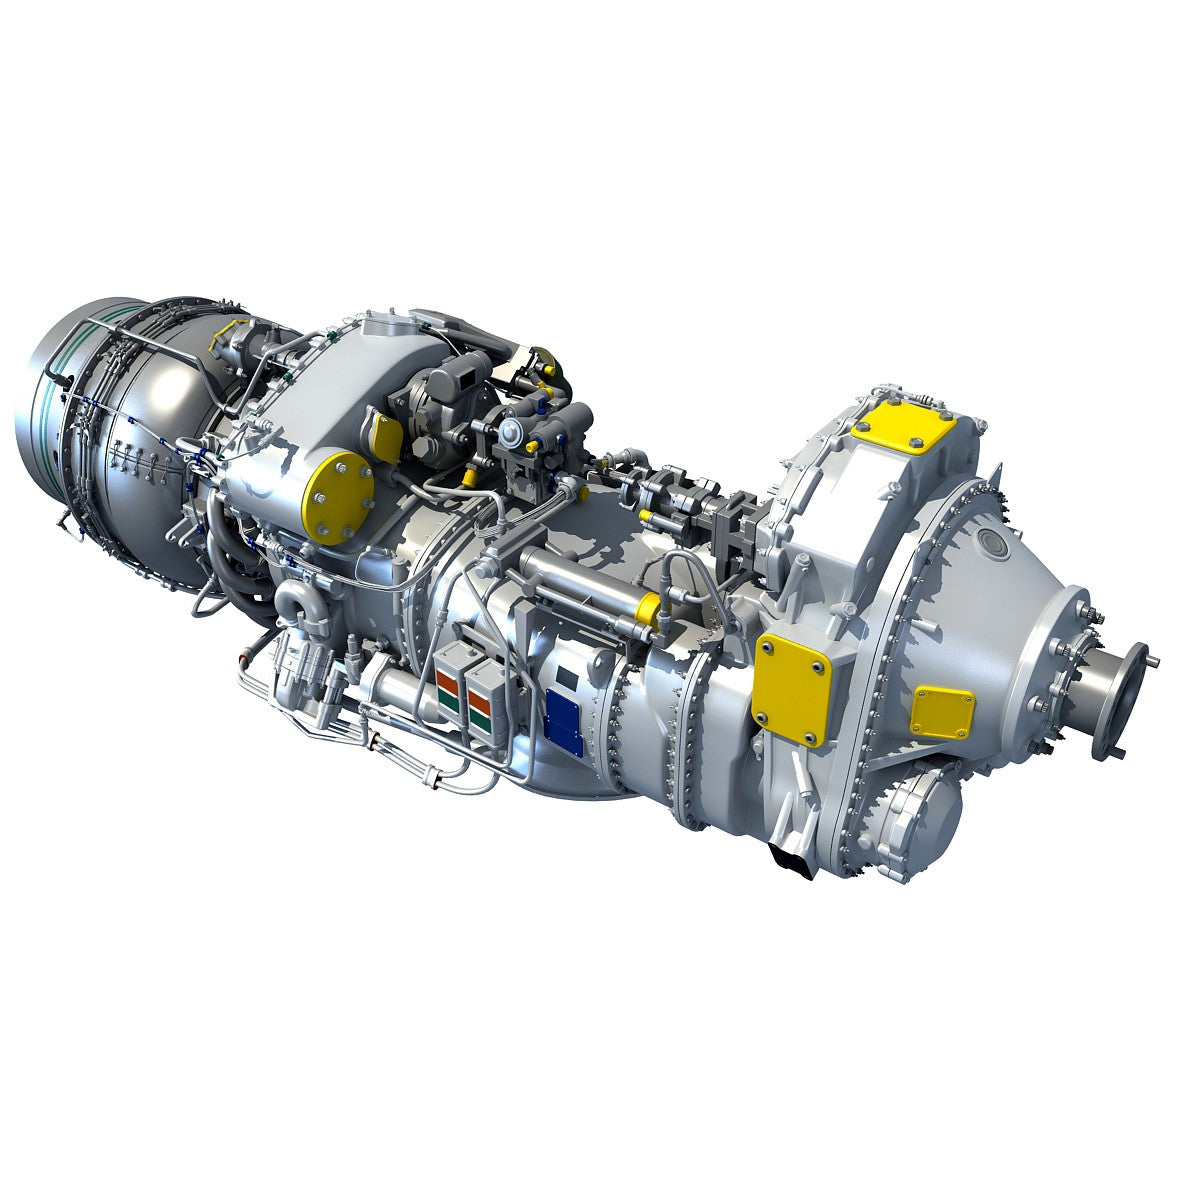 Pratt & Whitney Turboprop 3D Engine Model